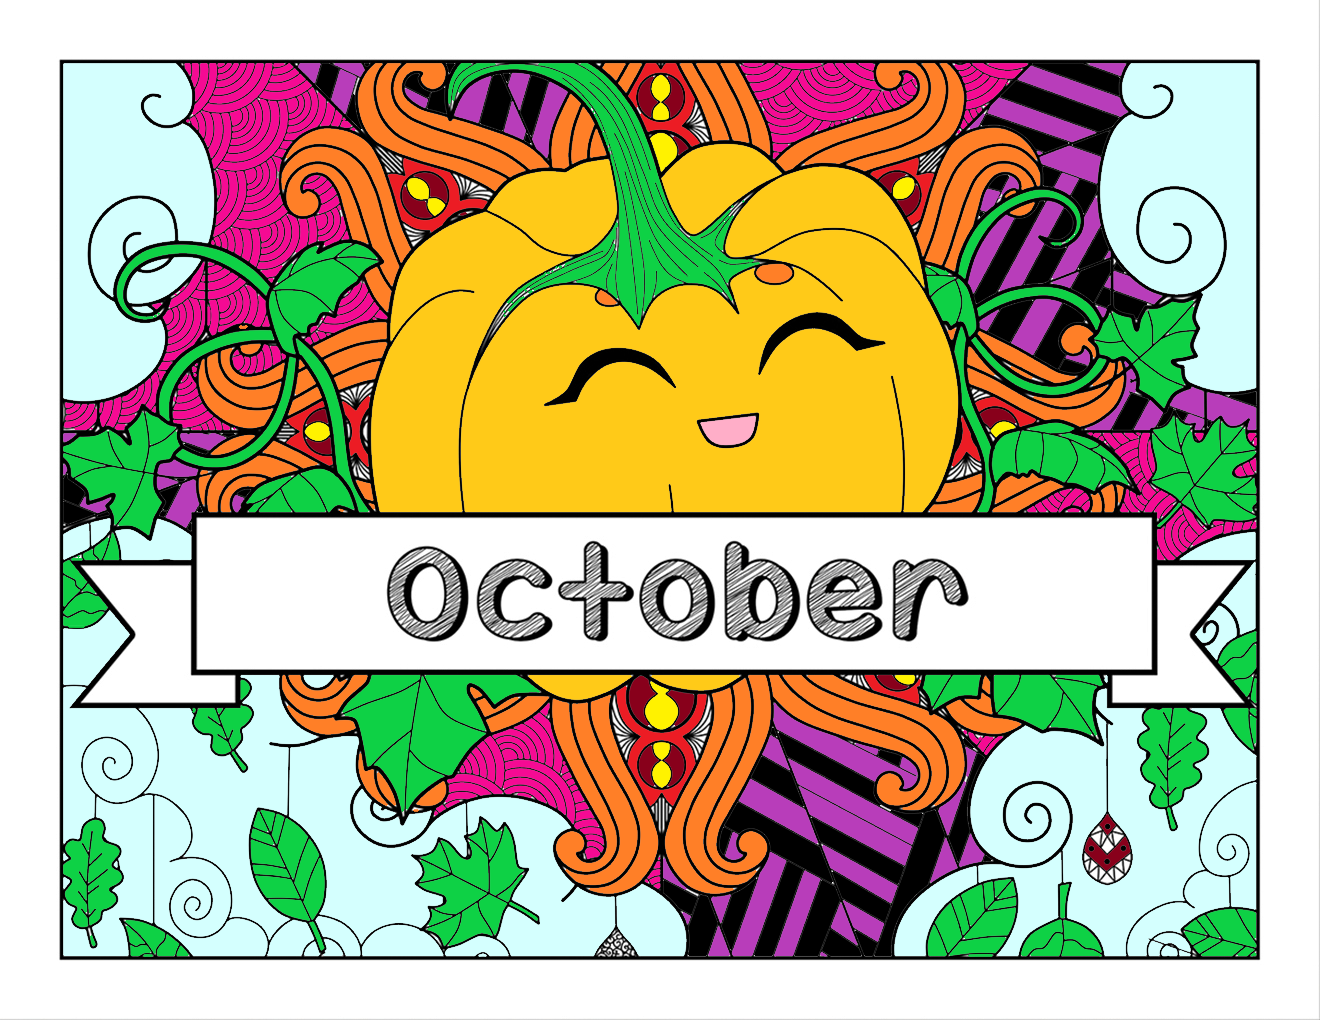 October, Fall & Halloween-themed Coloring Book and Planner, Mandalas - 35-Page Printable PDF for Adults and Children